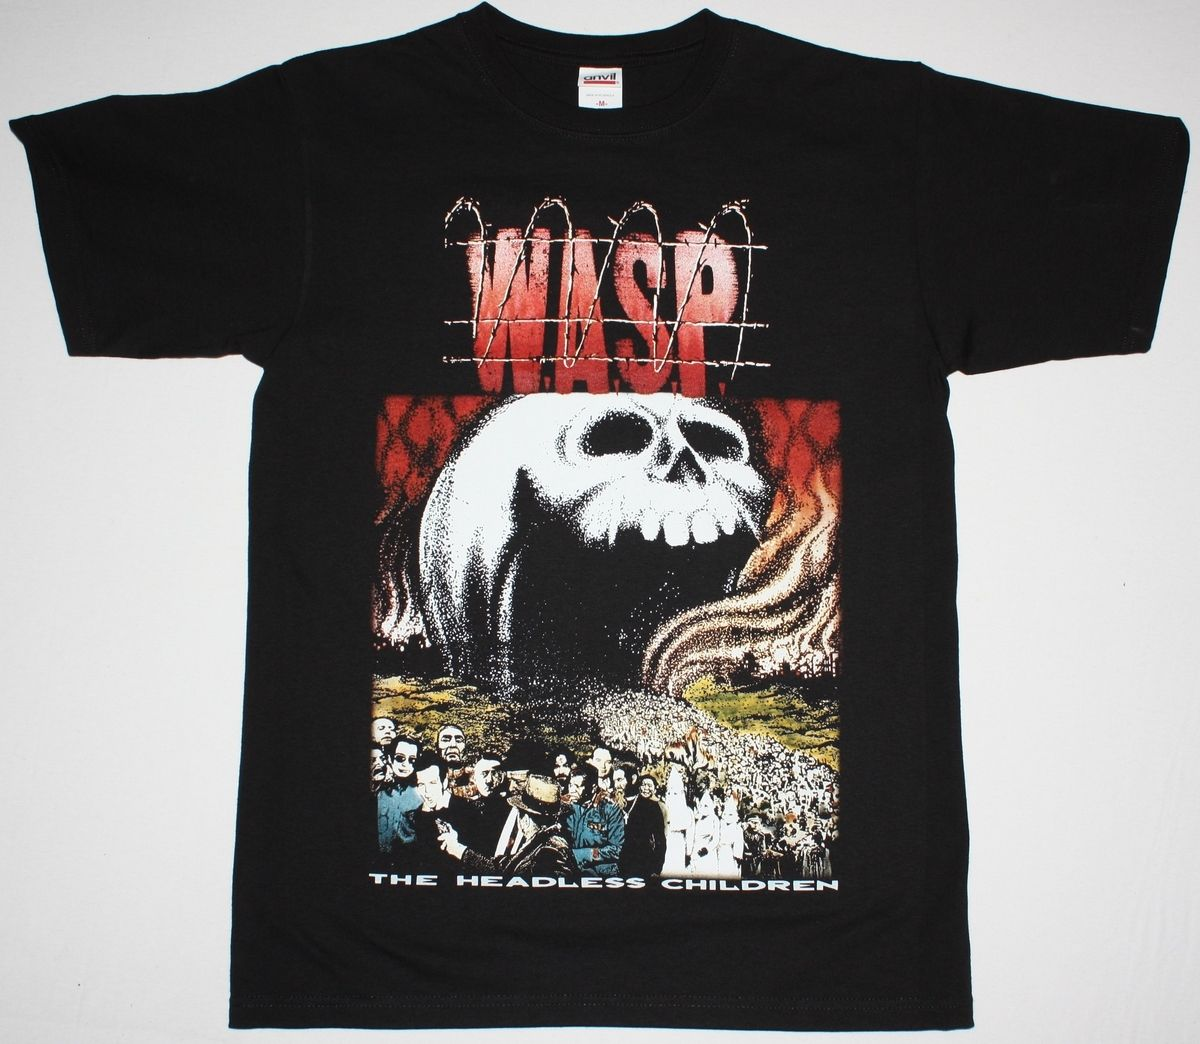 W.A.S.P. THE HEADLESS CHILDREN89 WASP HEAVY METAL BAND RATT NEW BLACK T-SHIRT Fashion Print T Shirt Plus Size